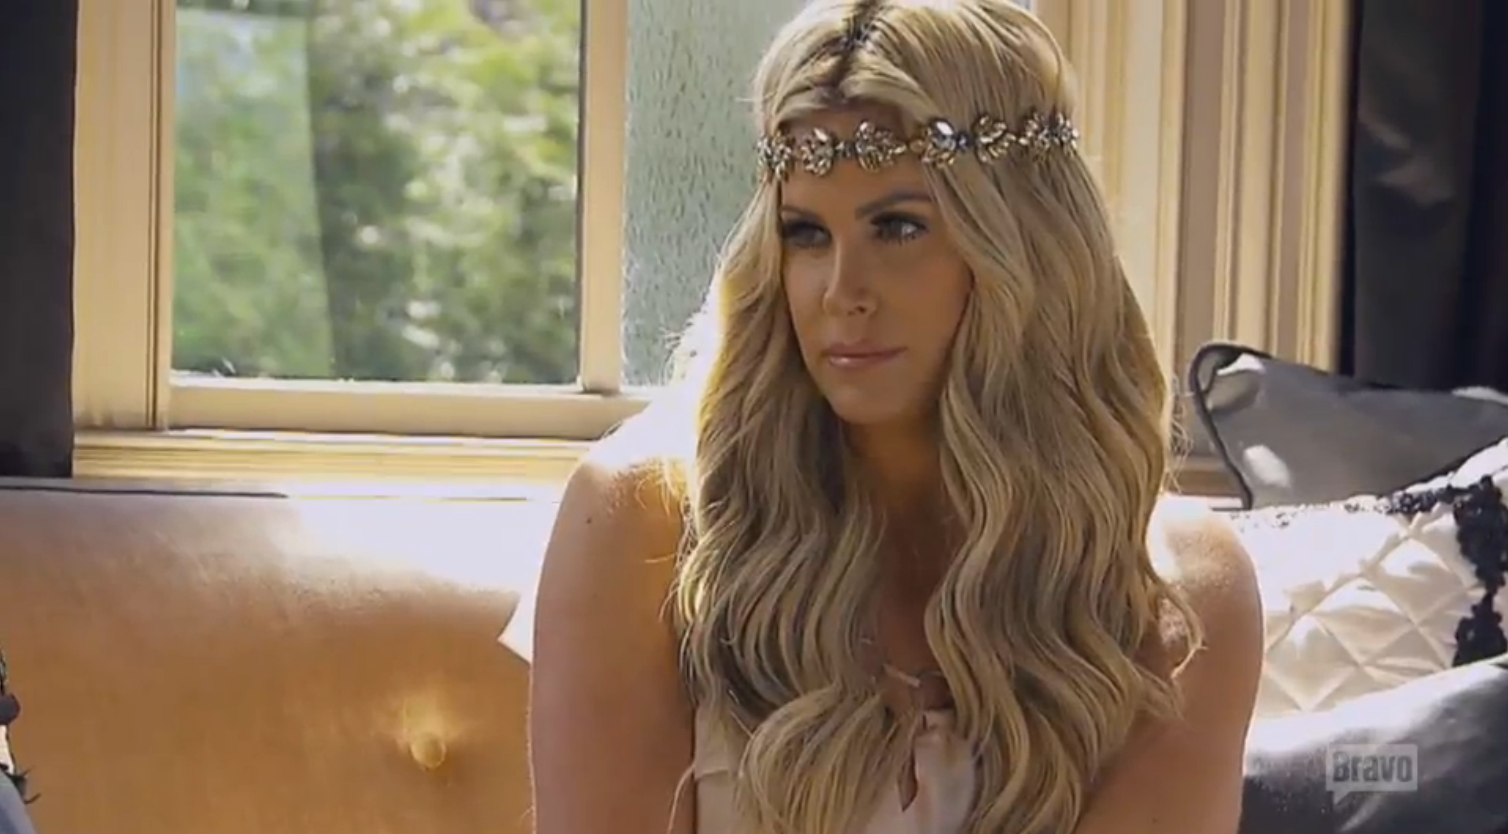 tardy-kim-zolciak-greek-goddess